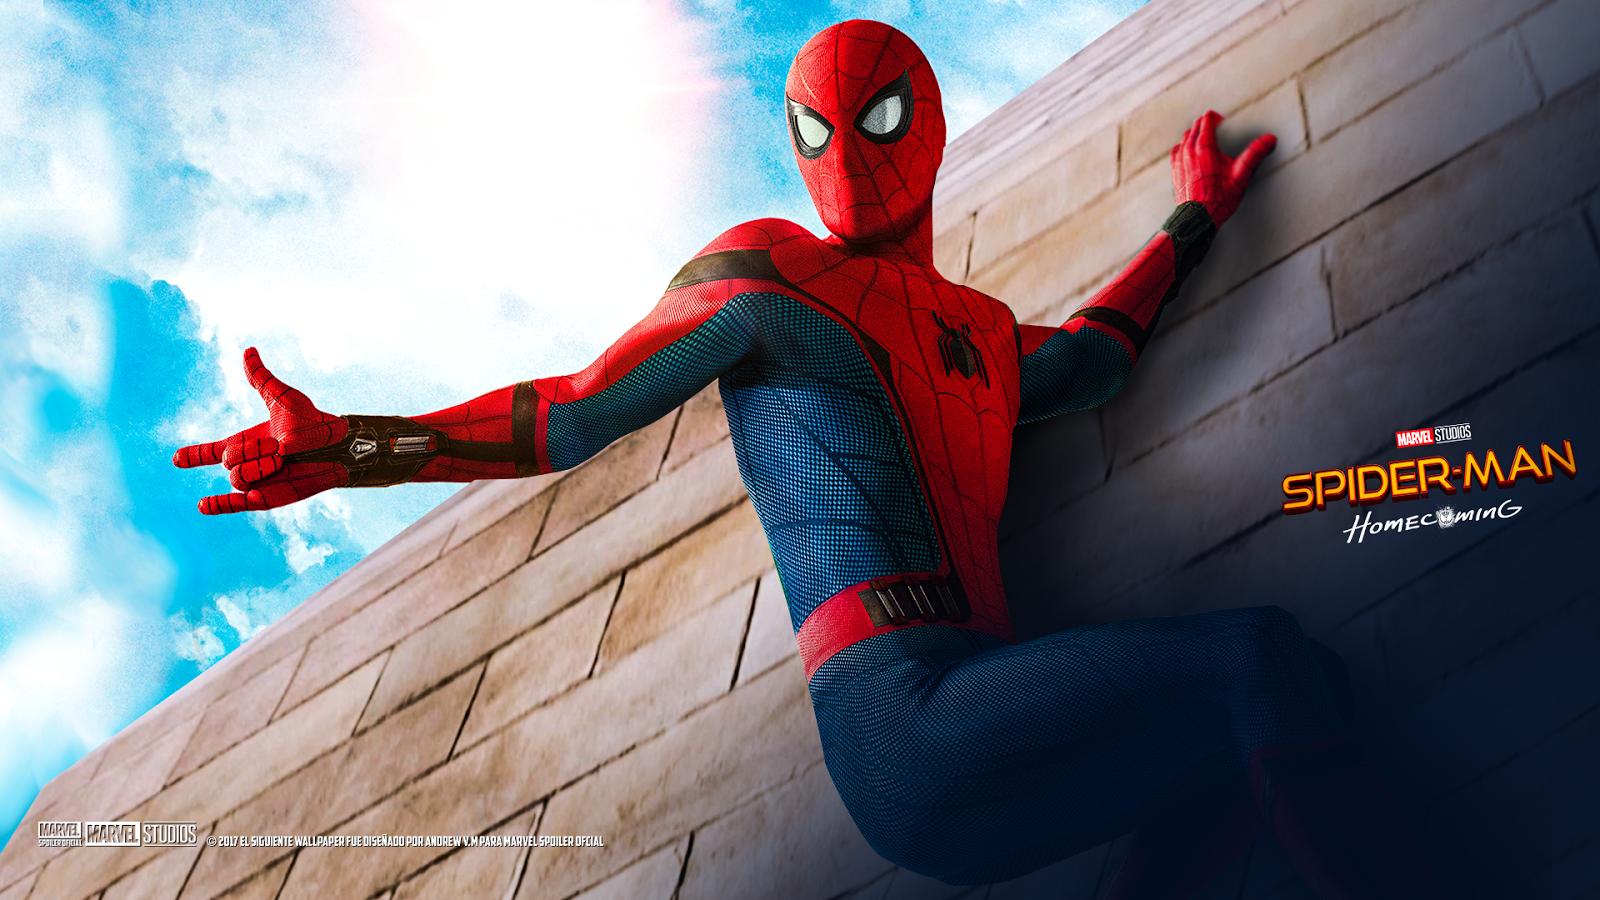 Spider Man Homecoming Wallpaper and Background Image 1600x900 1600x900